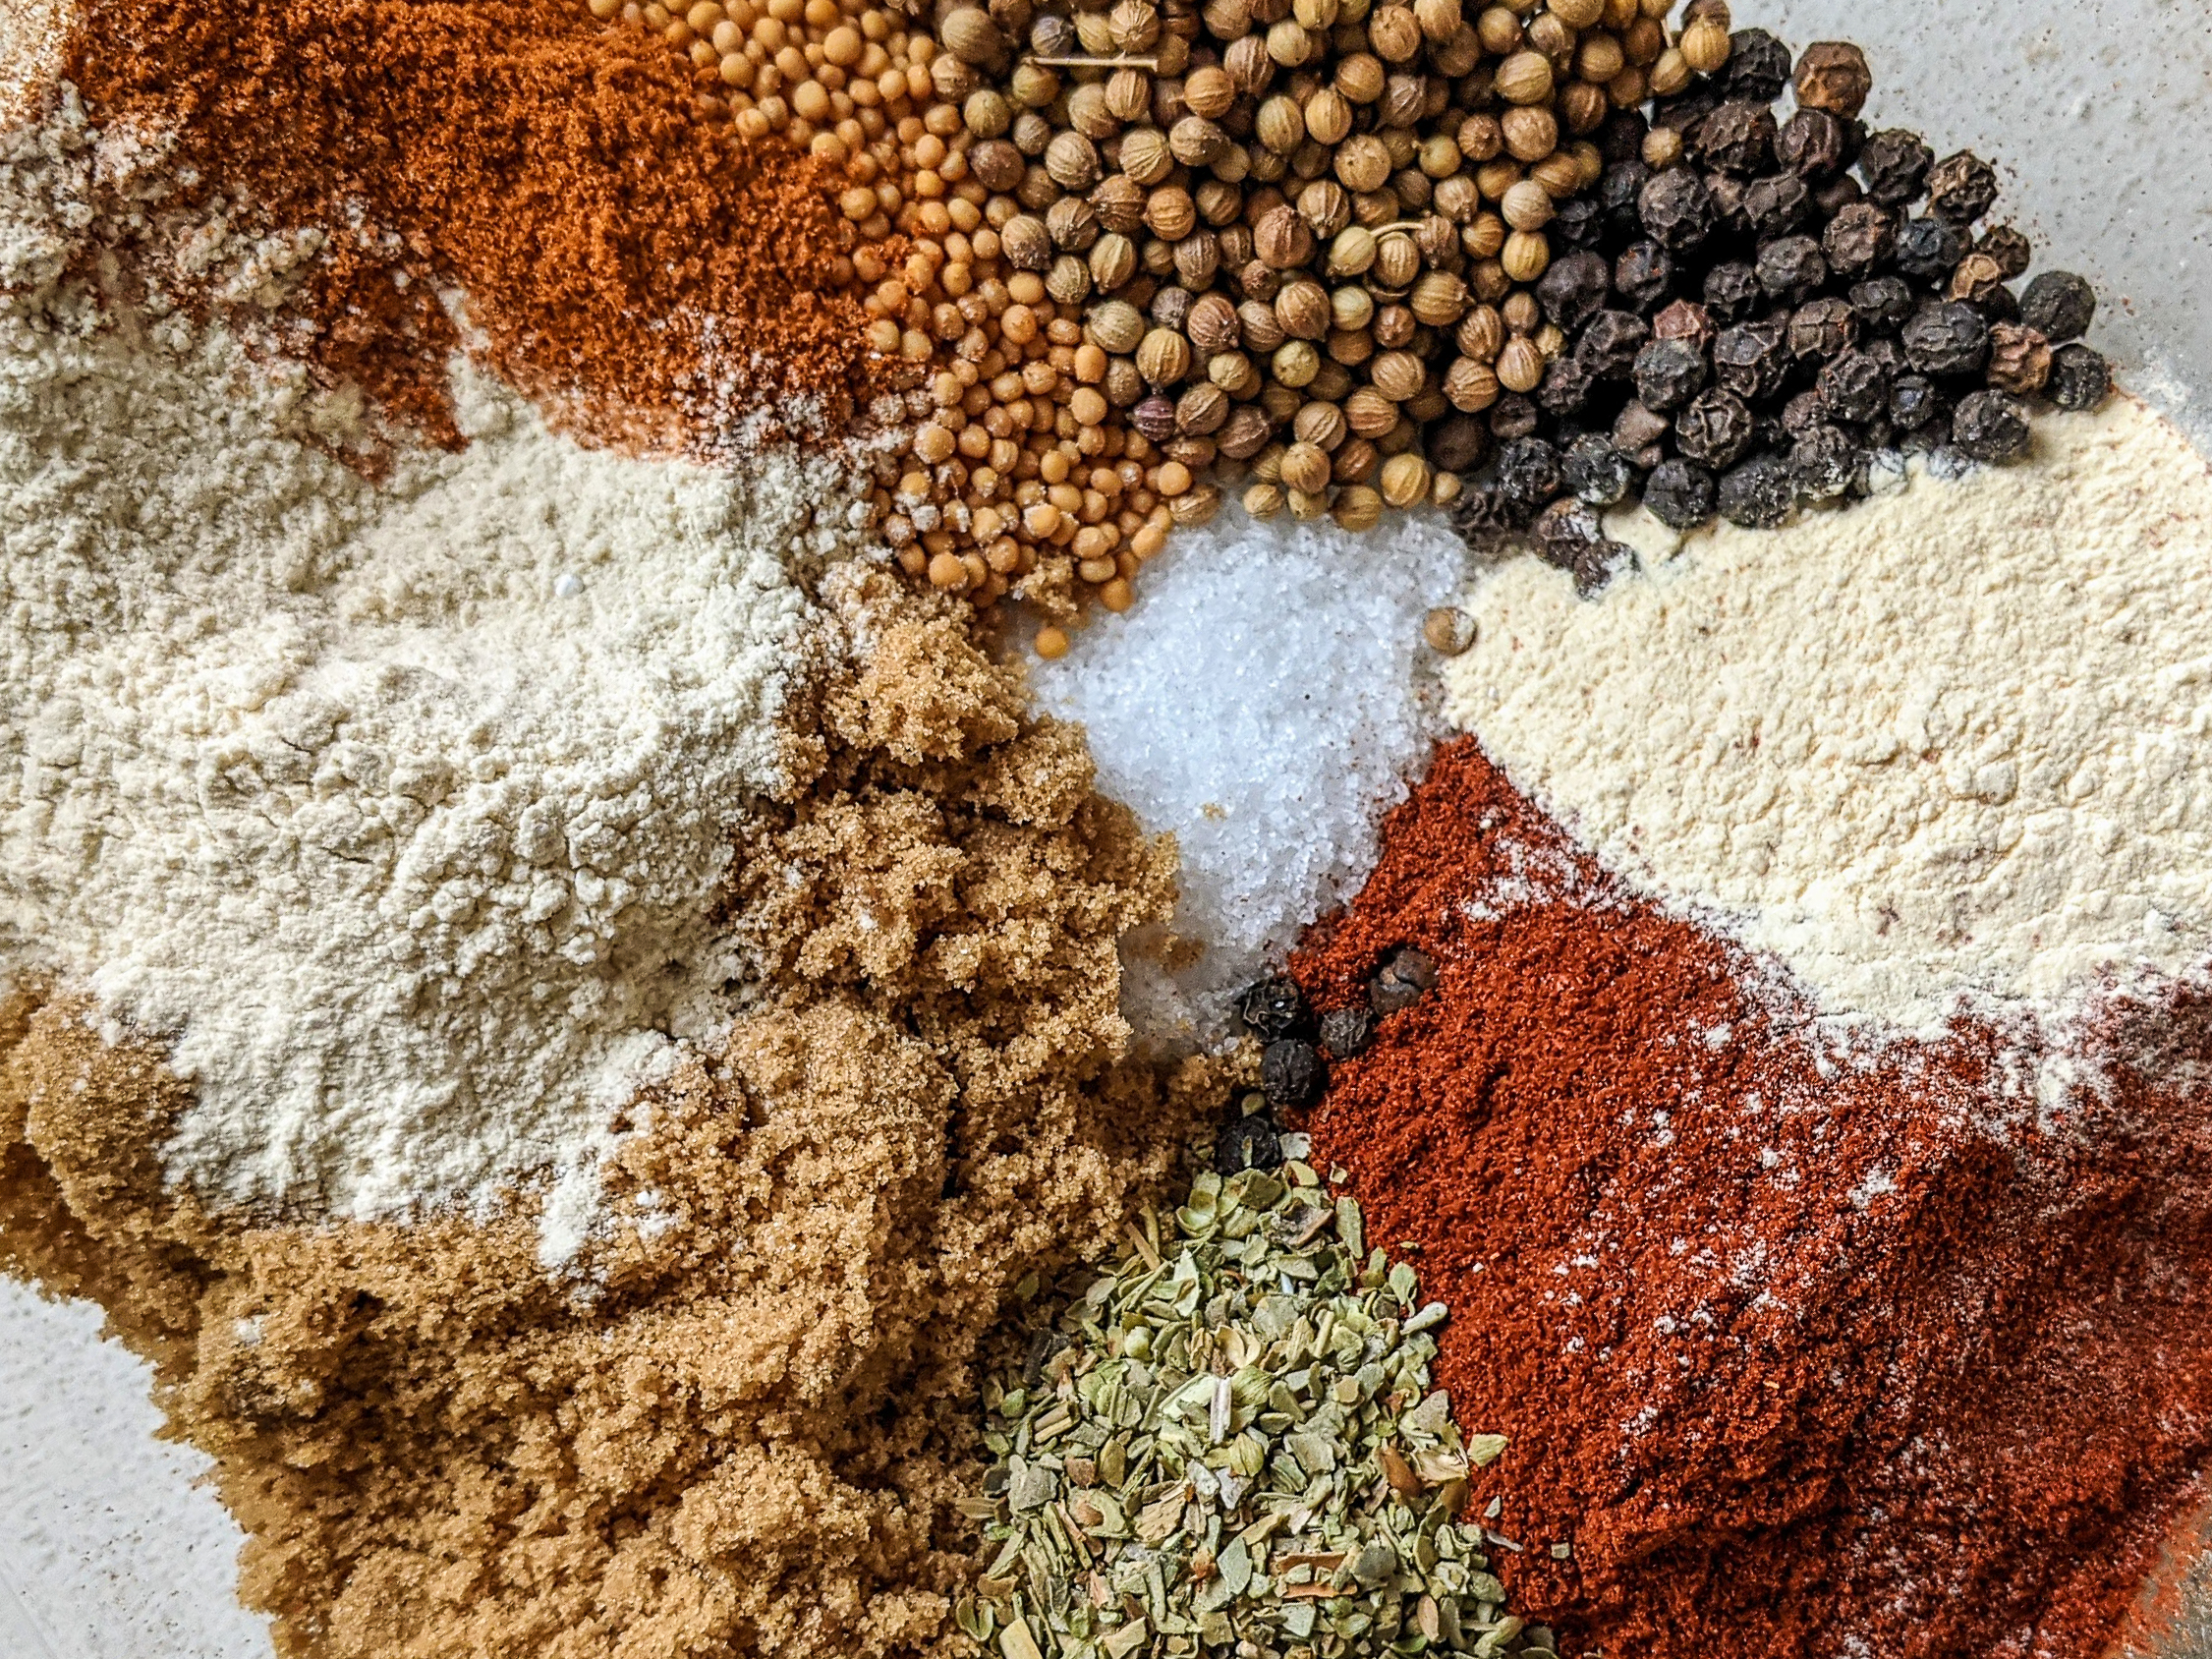 mixture of whole and ground spices